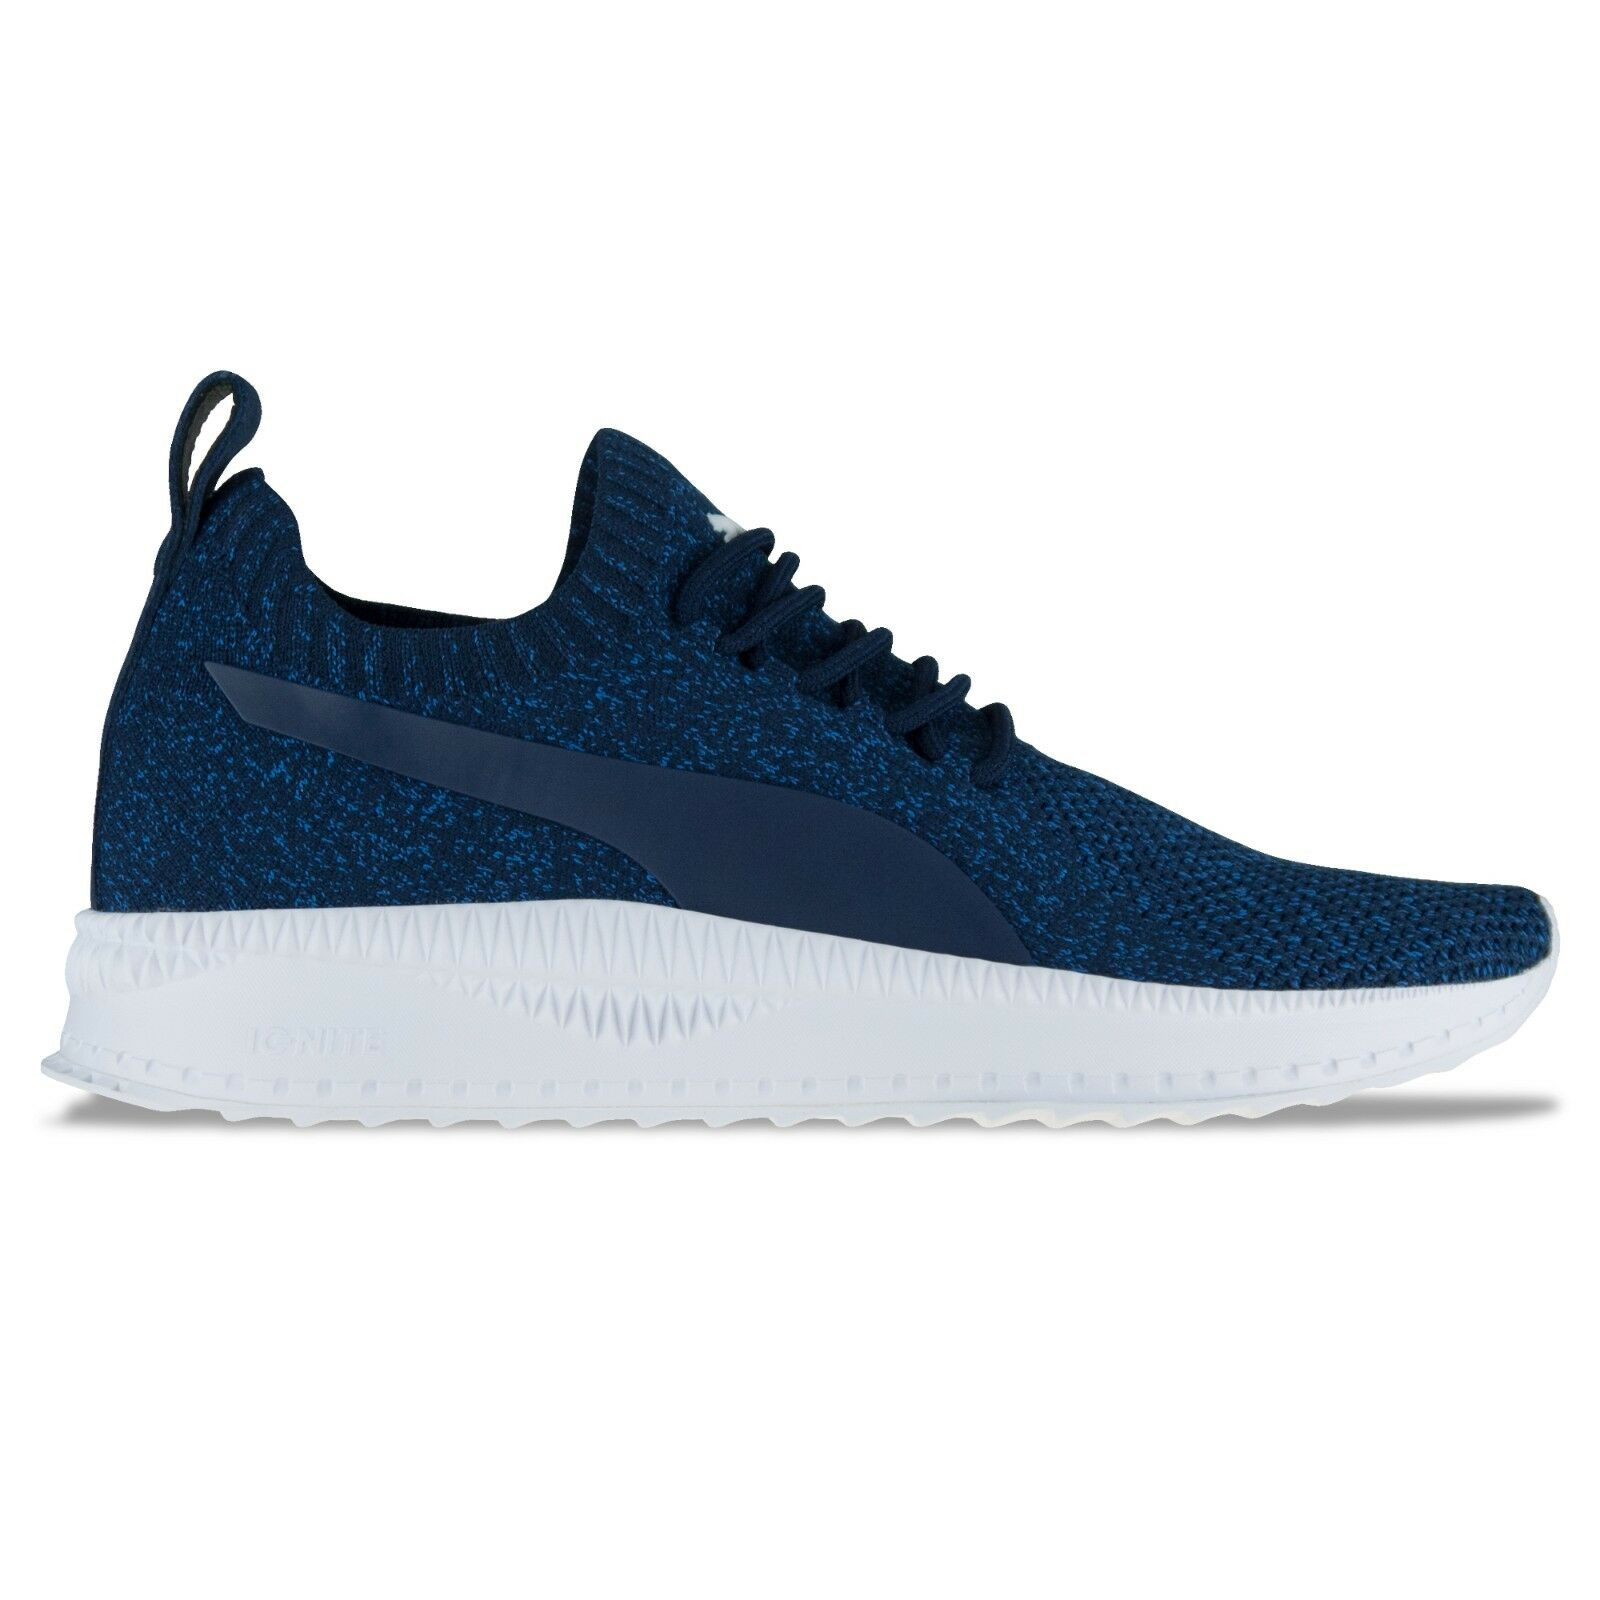 PUMA TSUGI APEX EVOKNIT TRAINERS - PEACOAT/TURKISH SEA - 366432 03 - BNIB